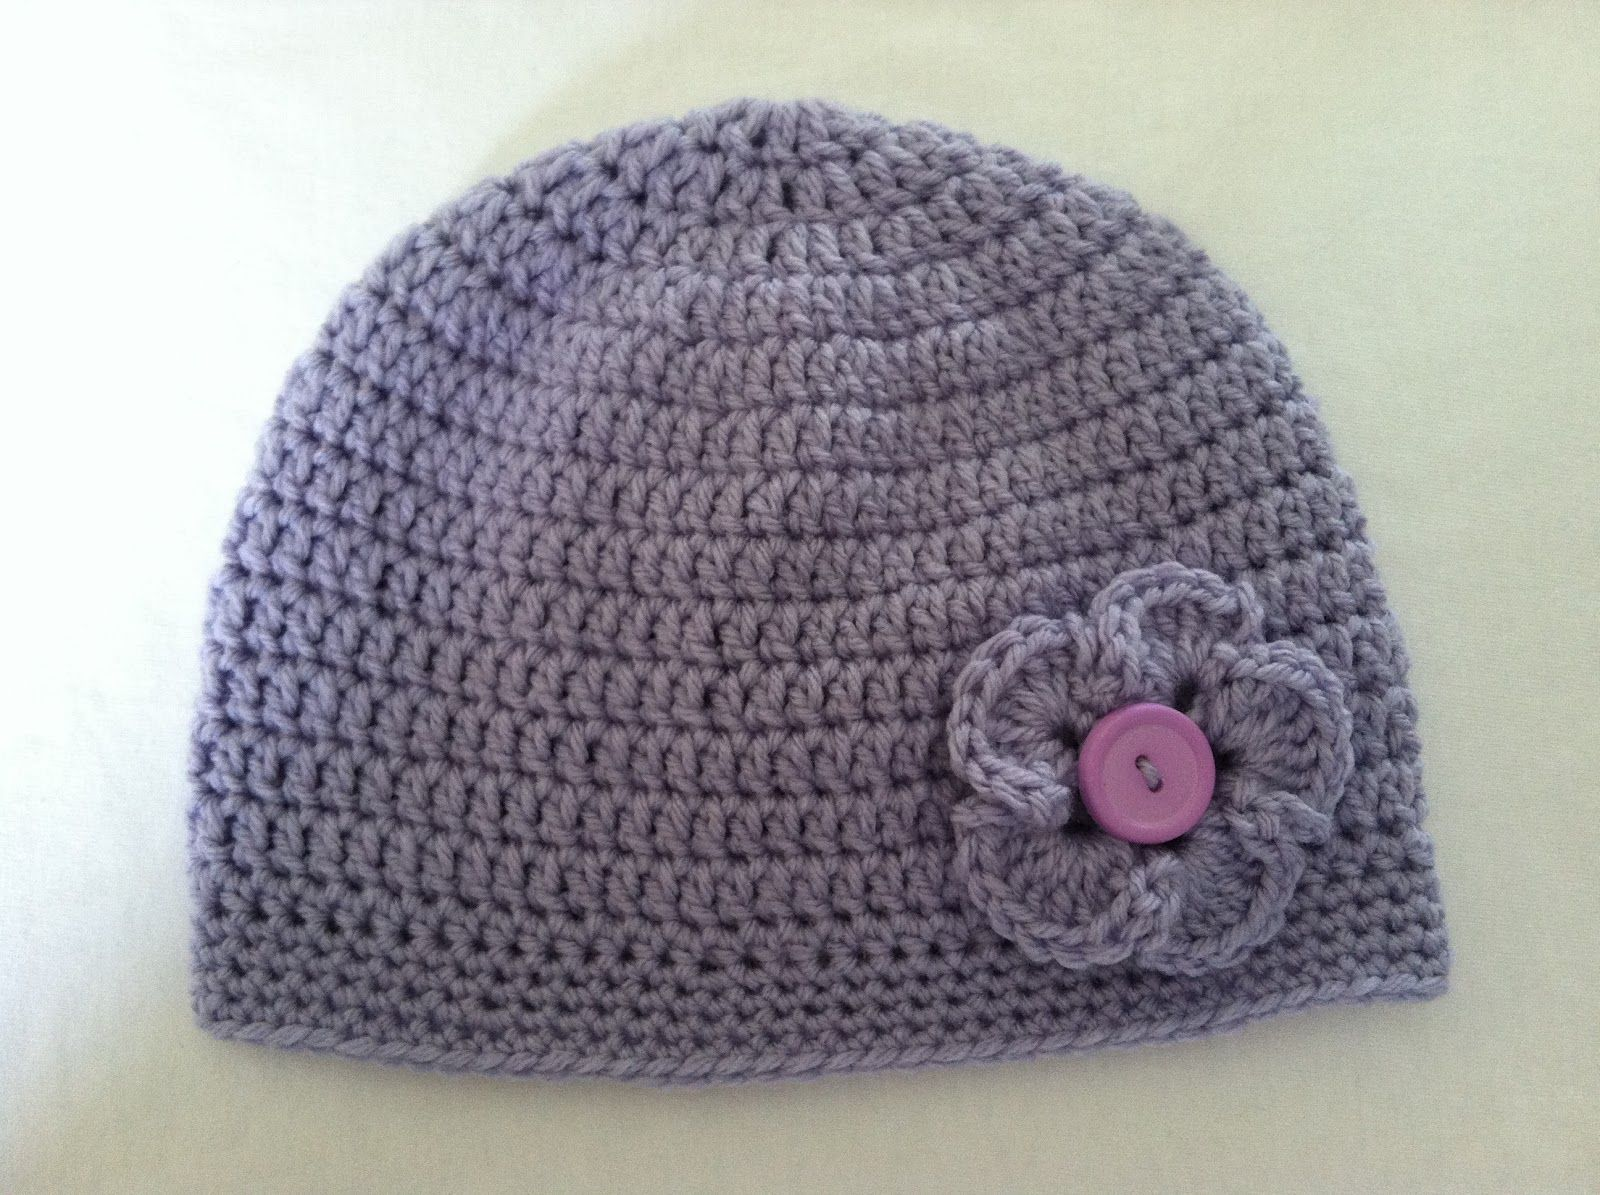 Modern Knit Chemo Cap Pattern Image Collection - Decke Stricken ...